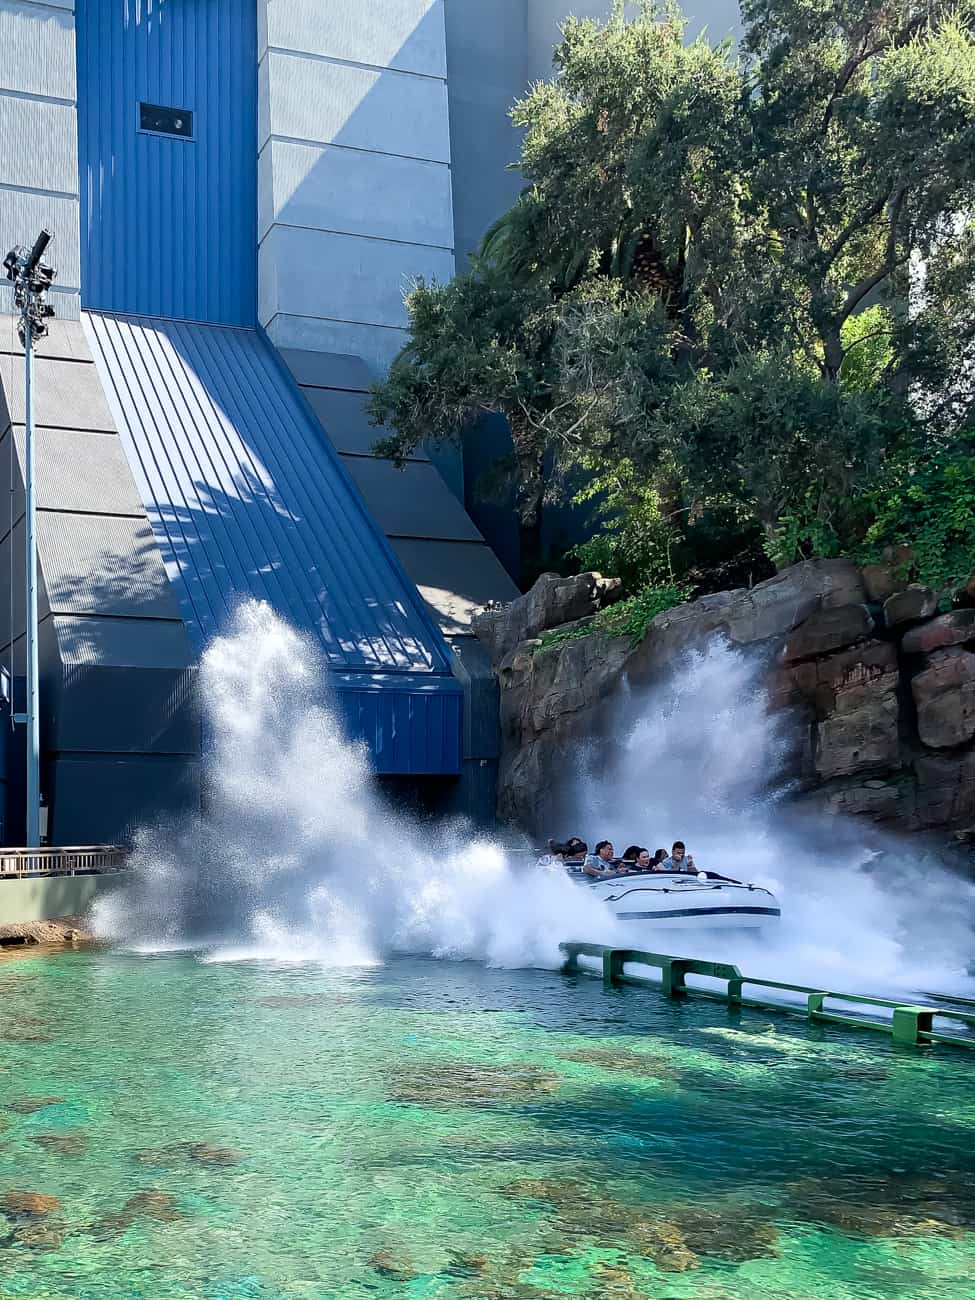 Jurassic World ride at Universal Studios